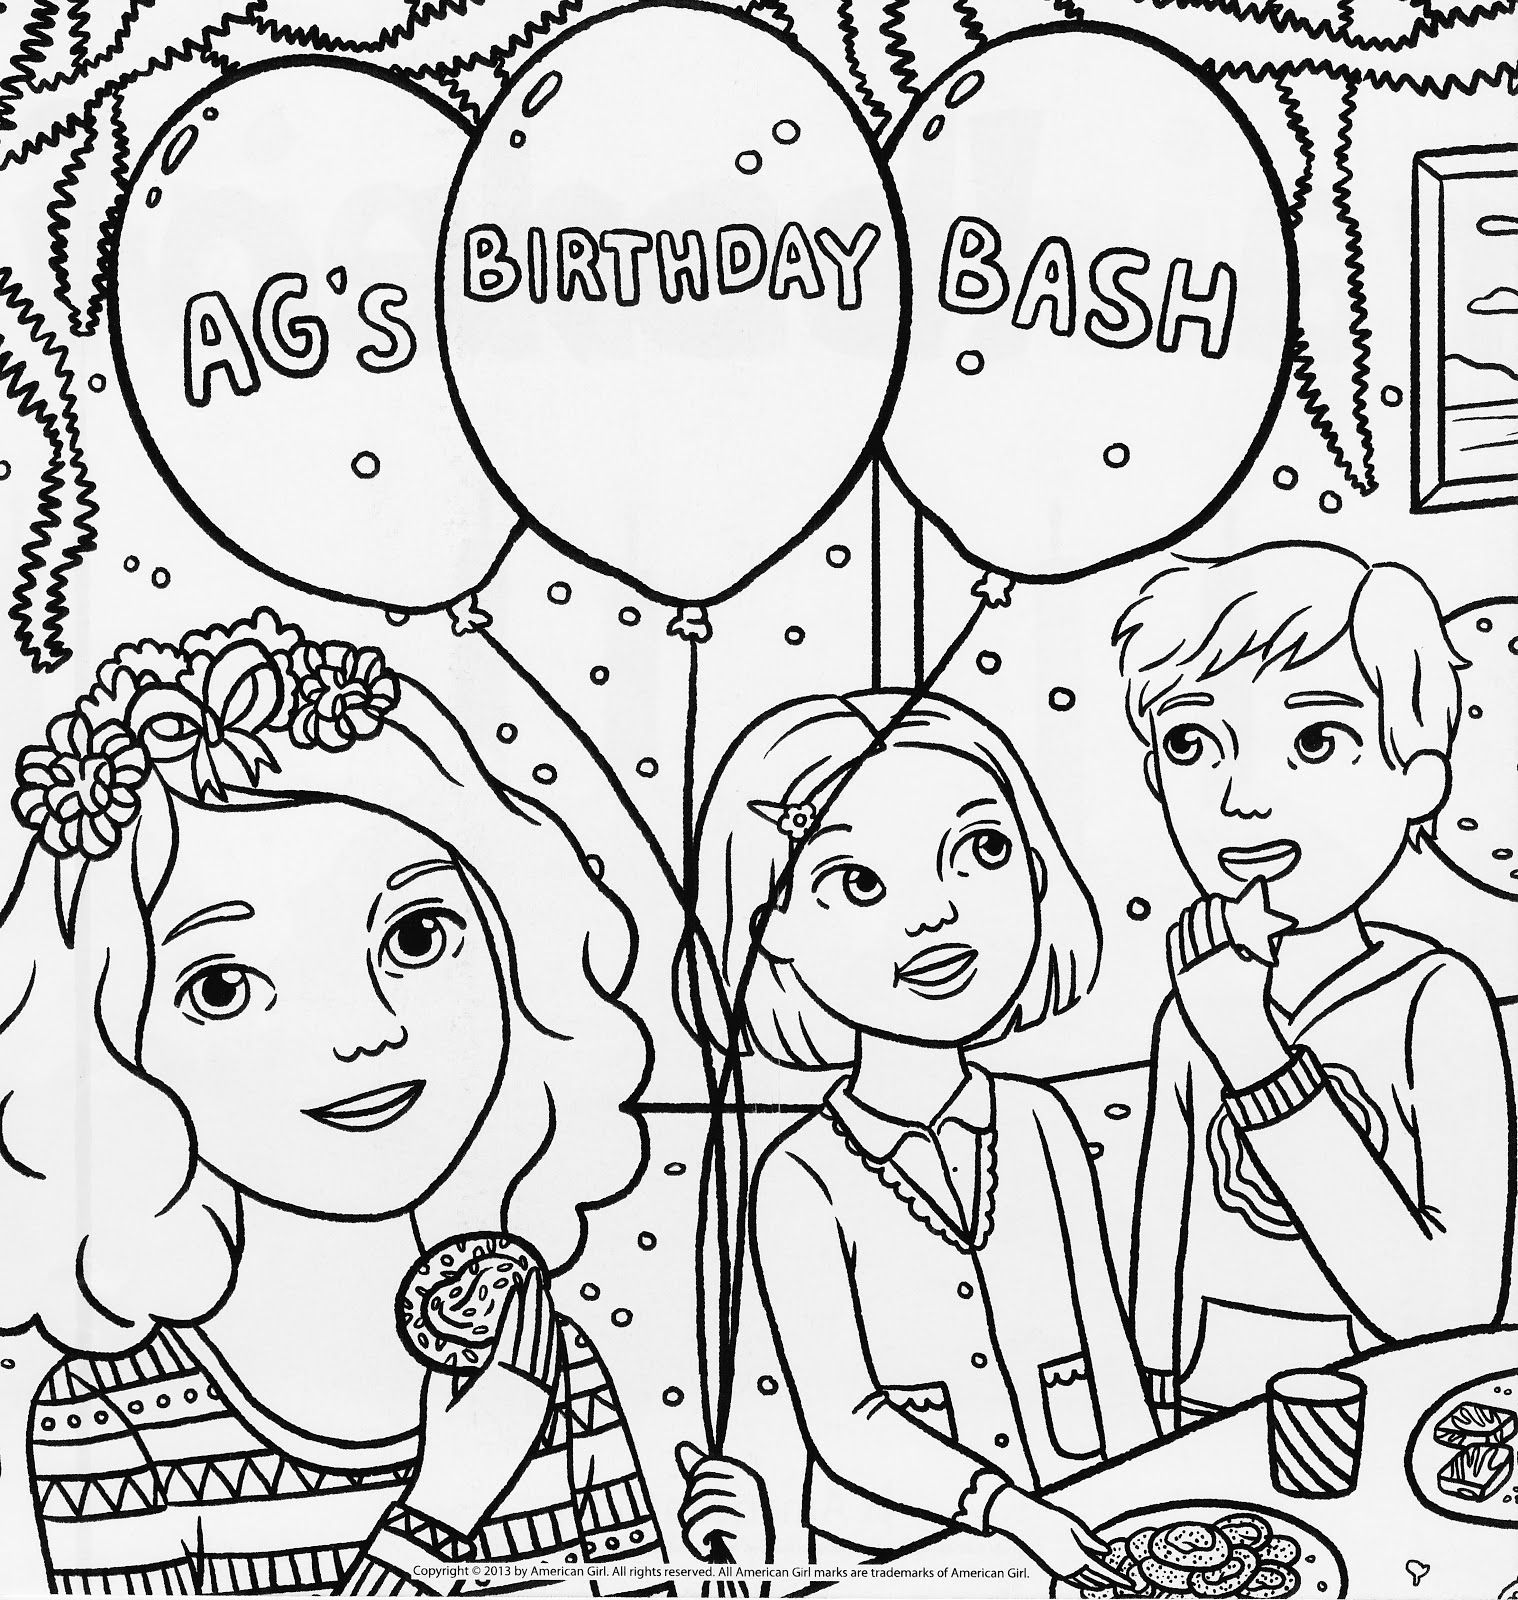 american girl grace thomas coloring pages | New: American Girl Birthday Bash Coloring Page! | American ...